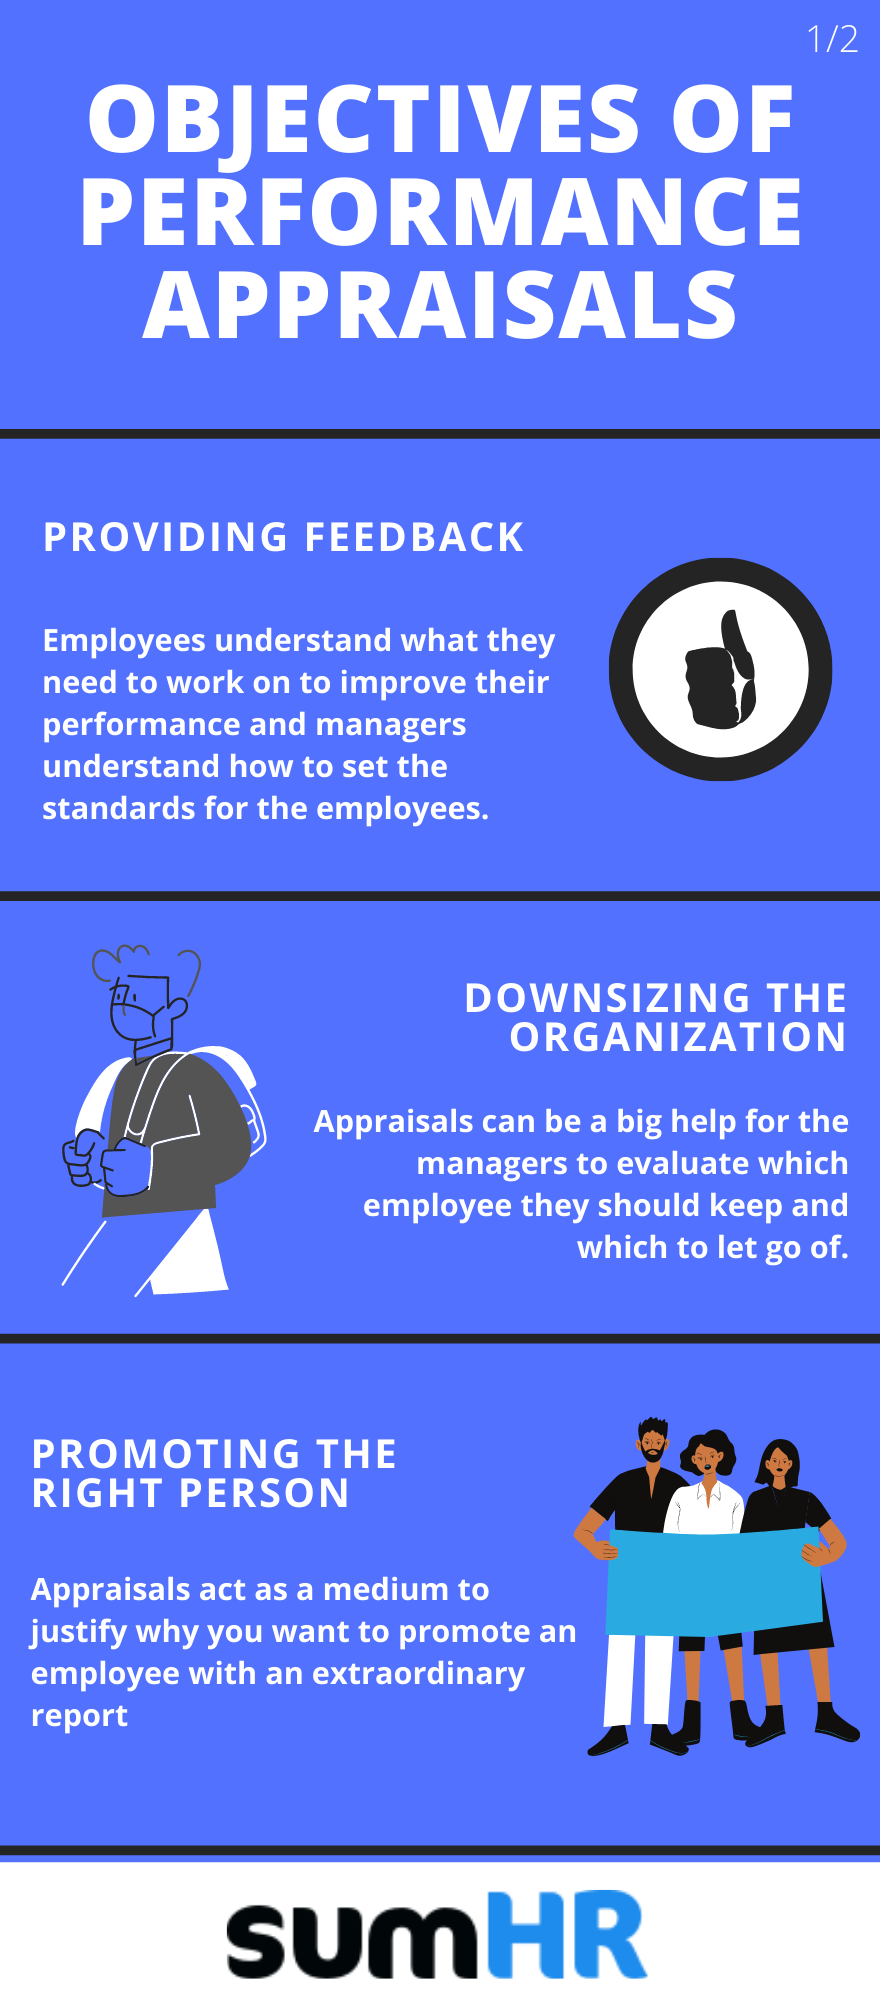 OBJECTIVES OF PERFORMANCE APPRAISALS: